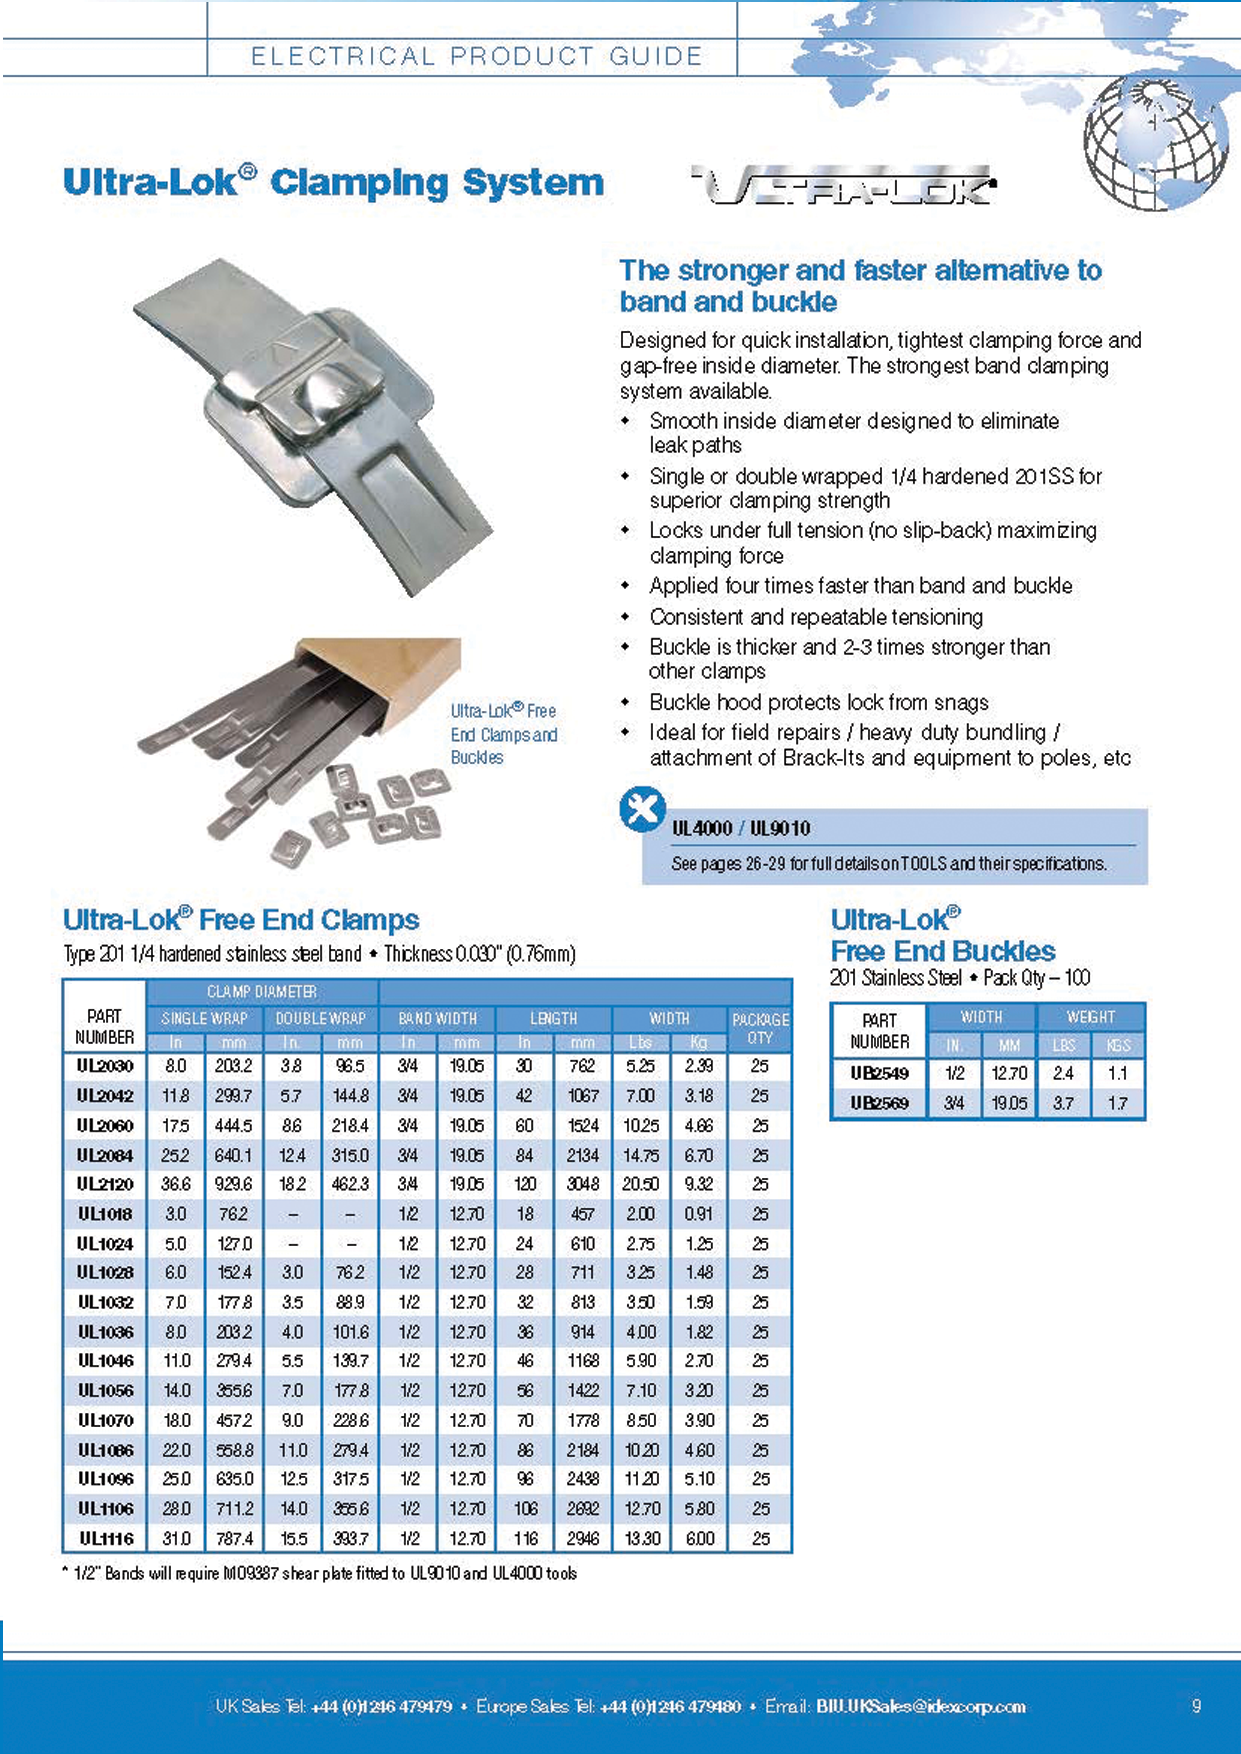 Ultra-Lok Clamping System